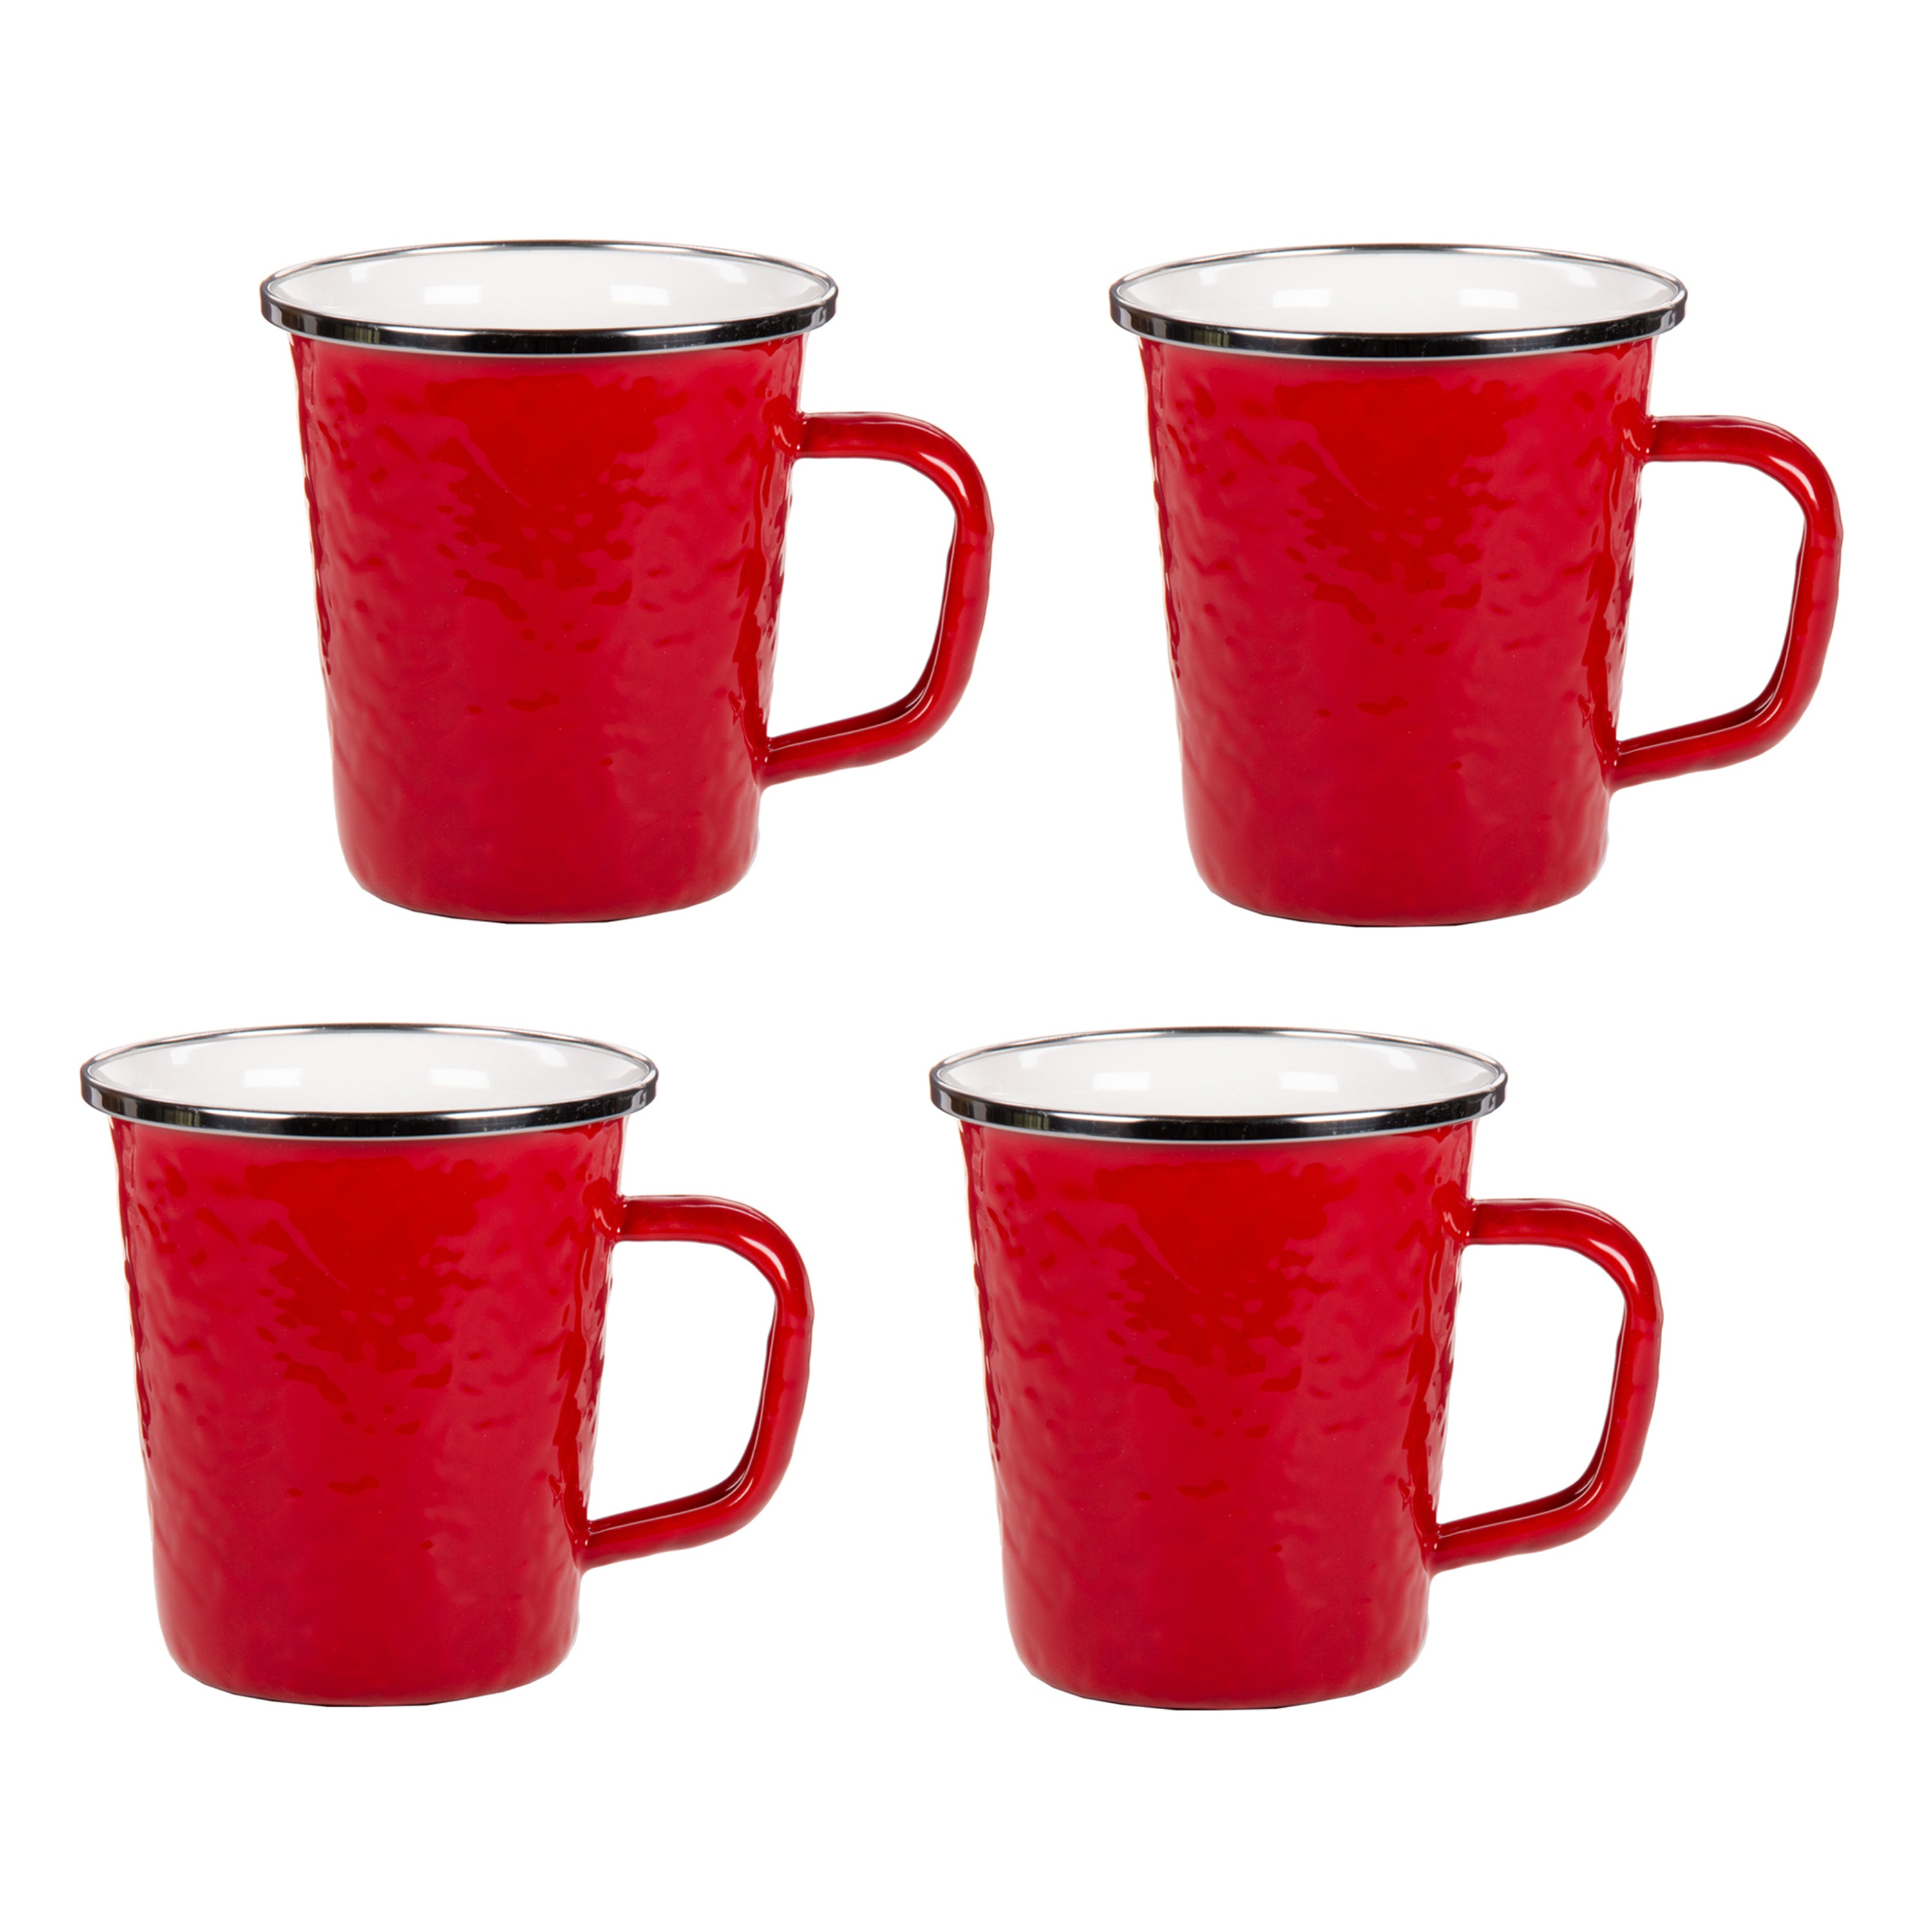 RR66S4 - Set of 4 Solid Red Latte Mugs Image 1